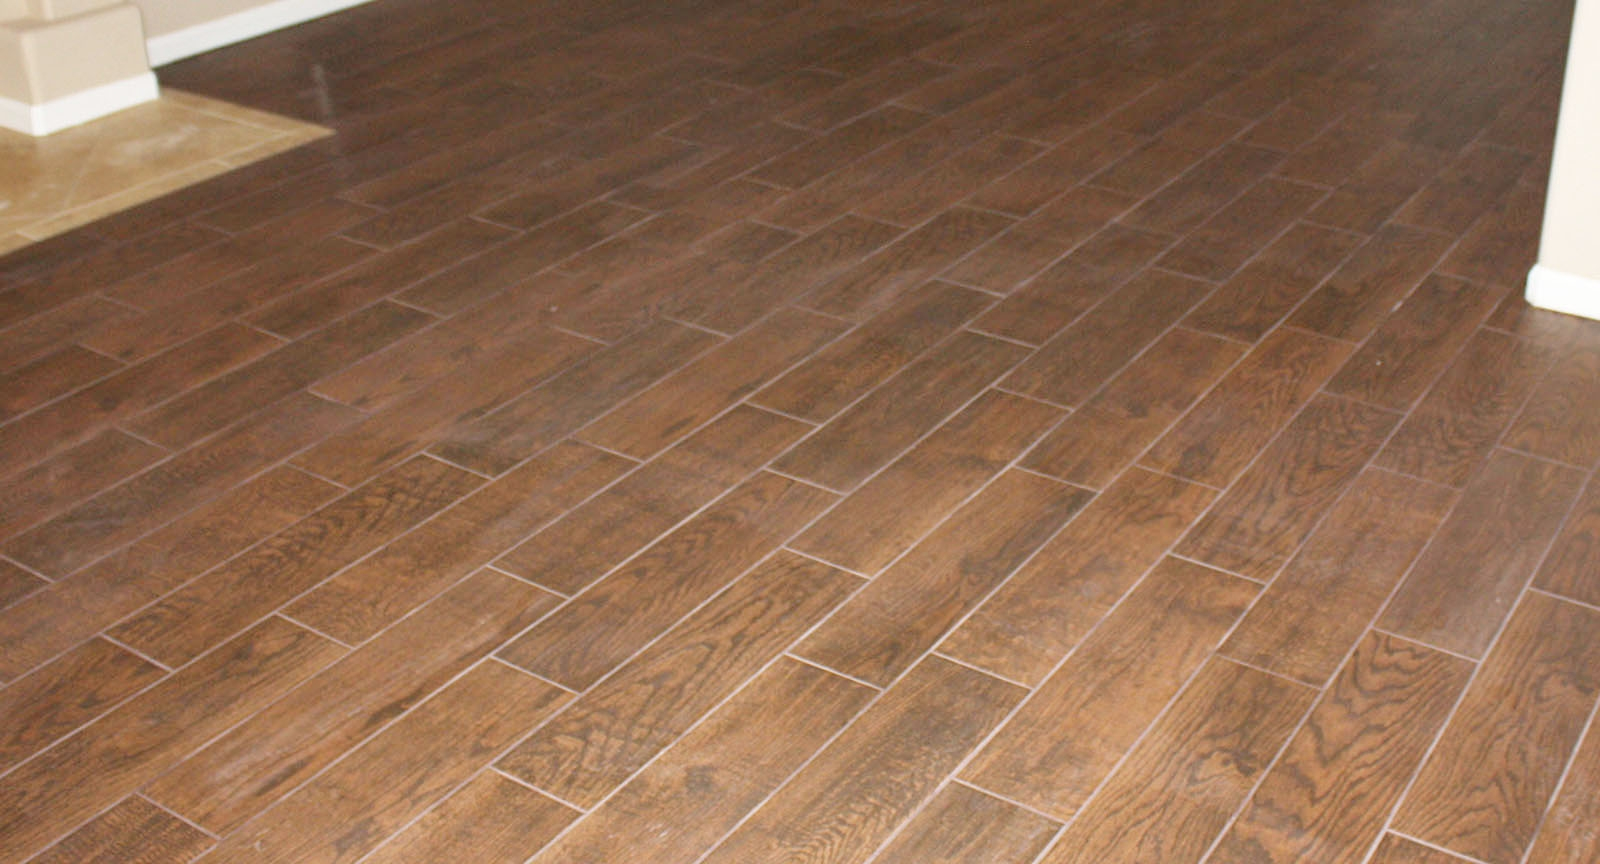 Floor Tile Wood Grain